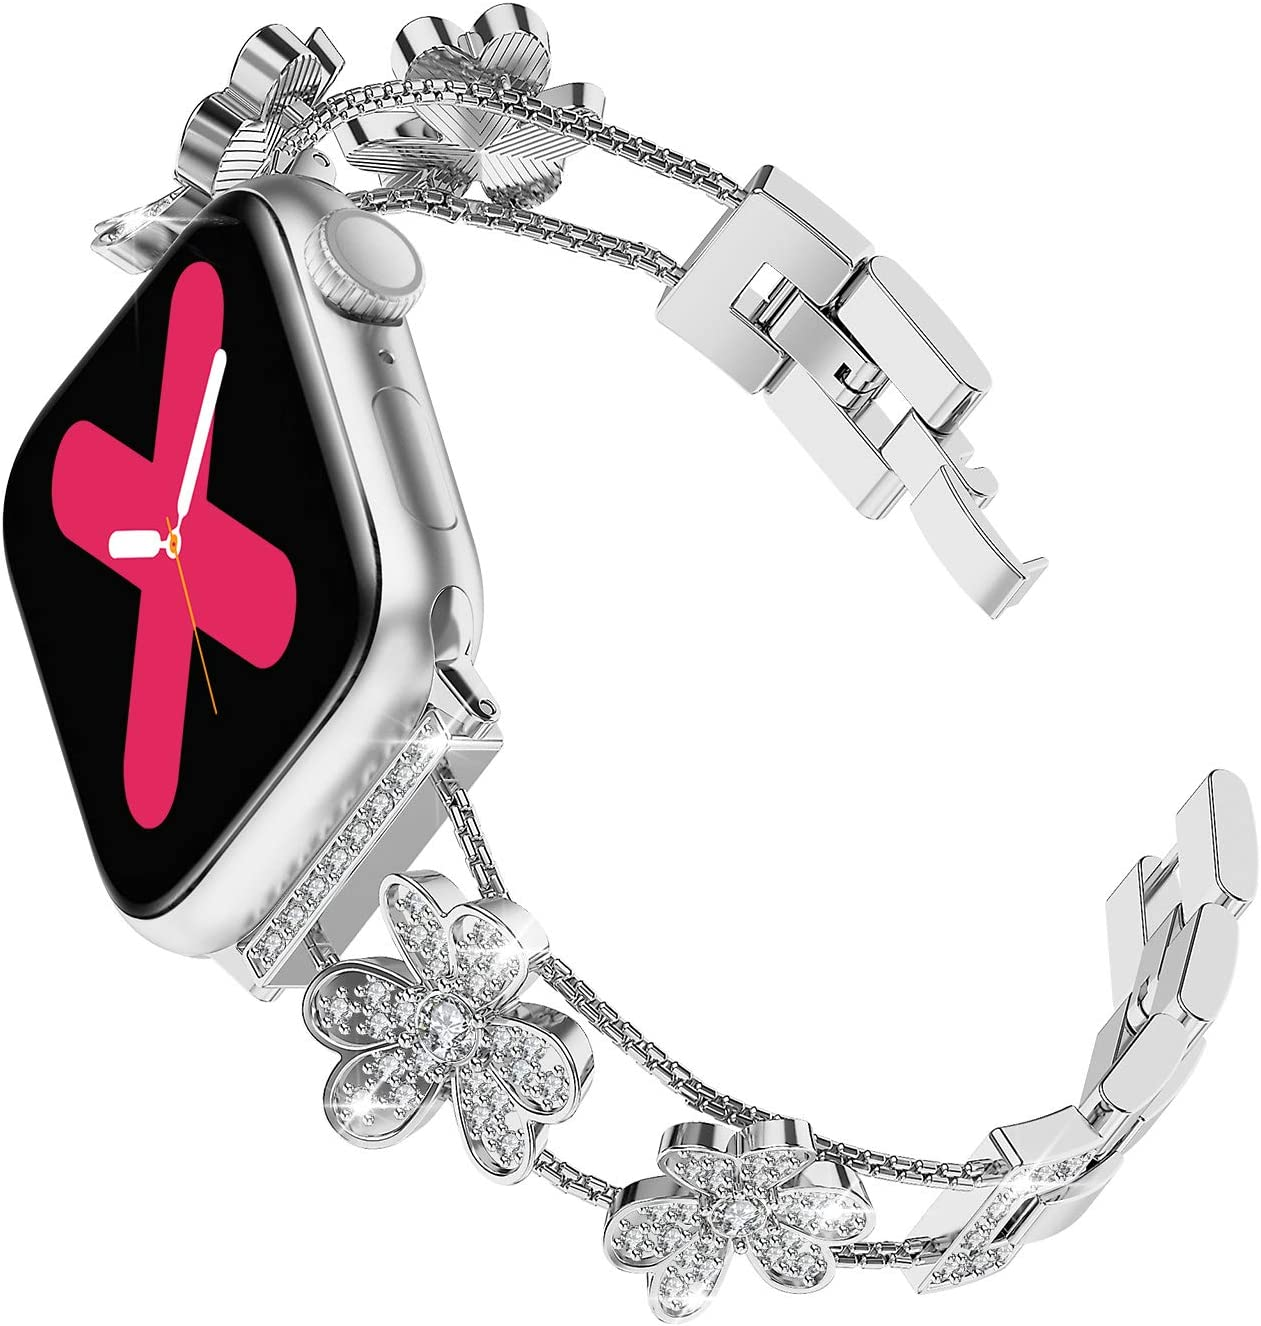 Ritastar Rhinestone Bracelet for Apple Watch Band Stainless Steel Women,Girly Dressy Wristband Jewelry Strap with Fashion Bling Czech Diamonds,Adjustable Metal Buckle for 40mm 38mm Series 6,5,4,3,2,1